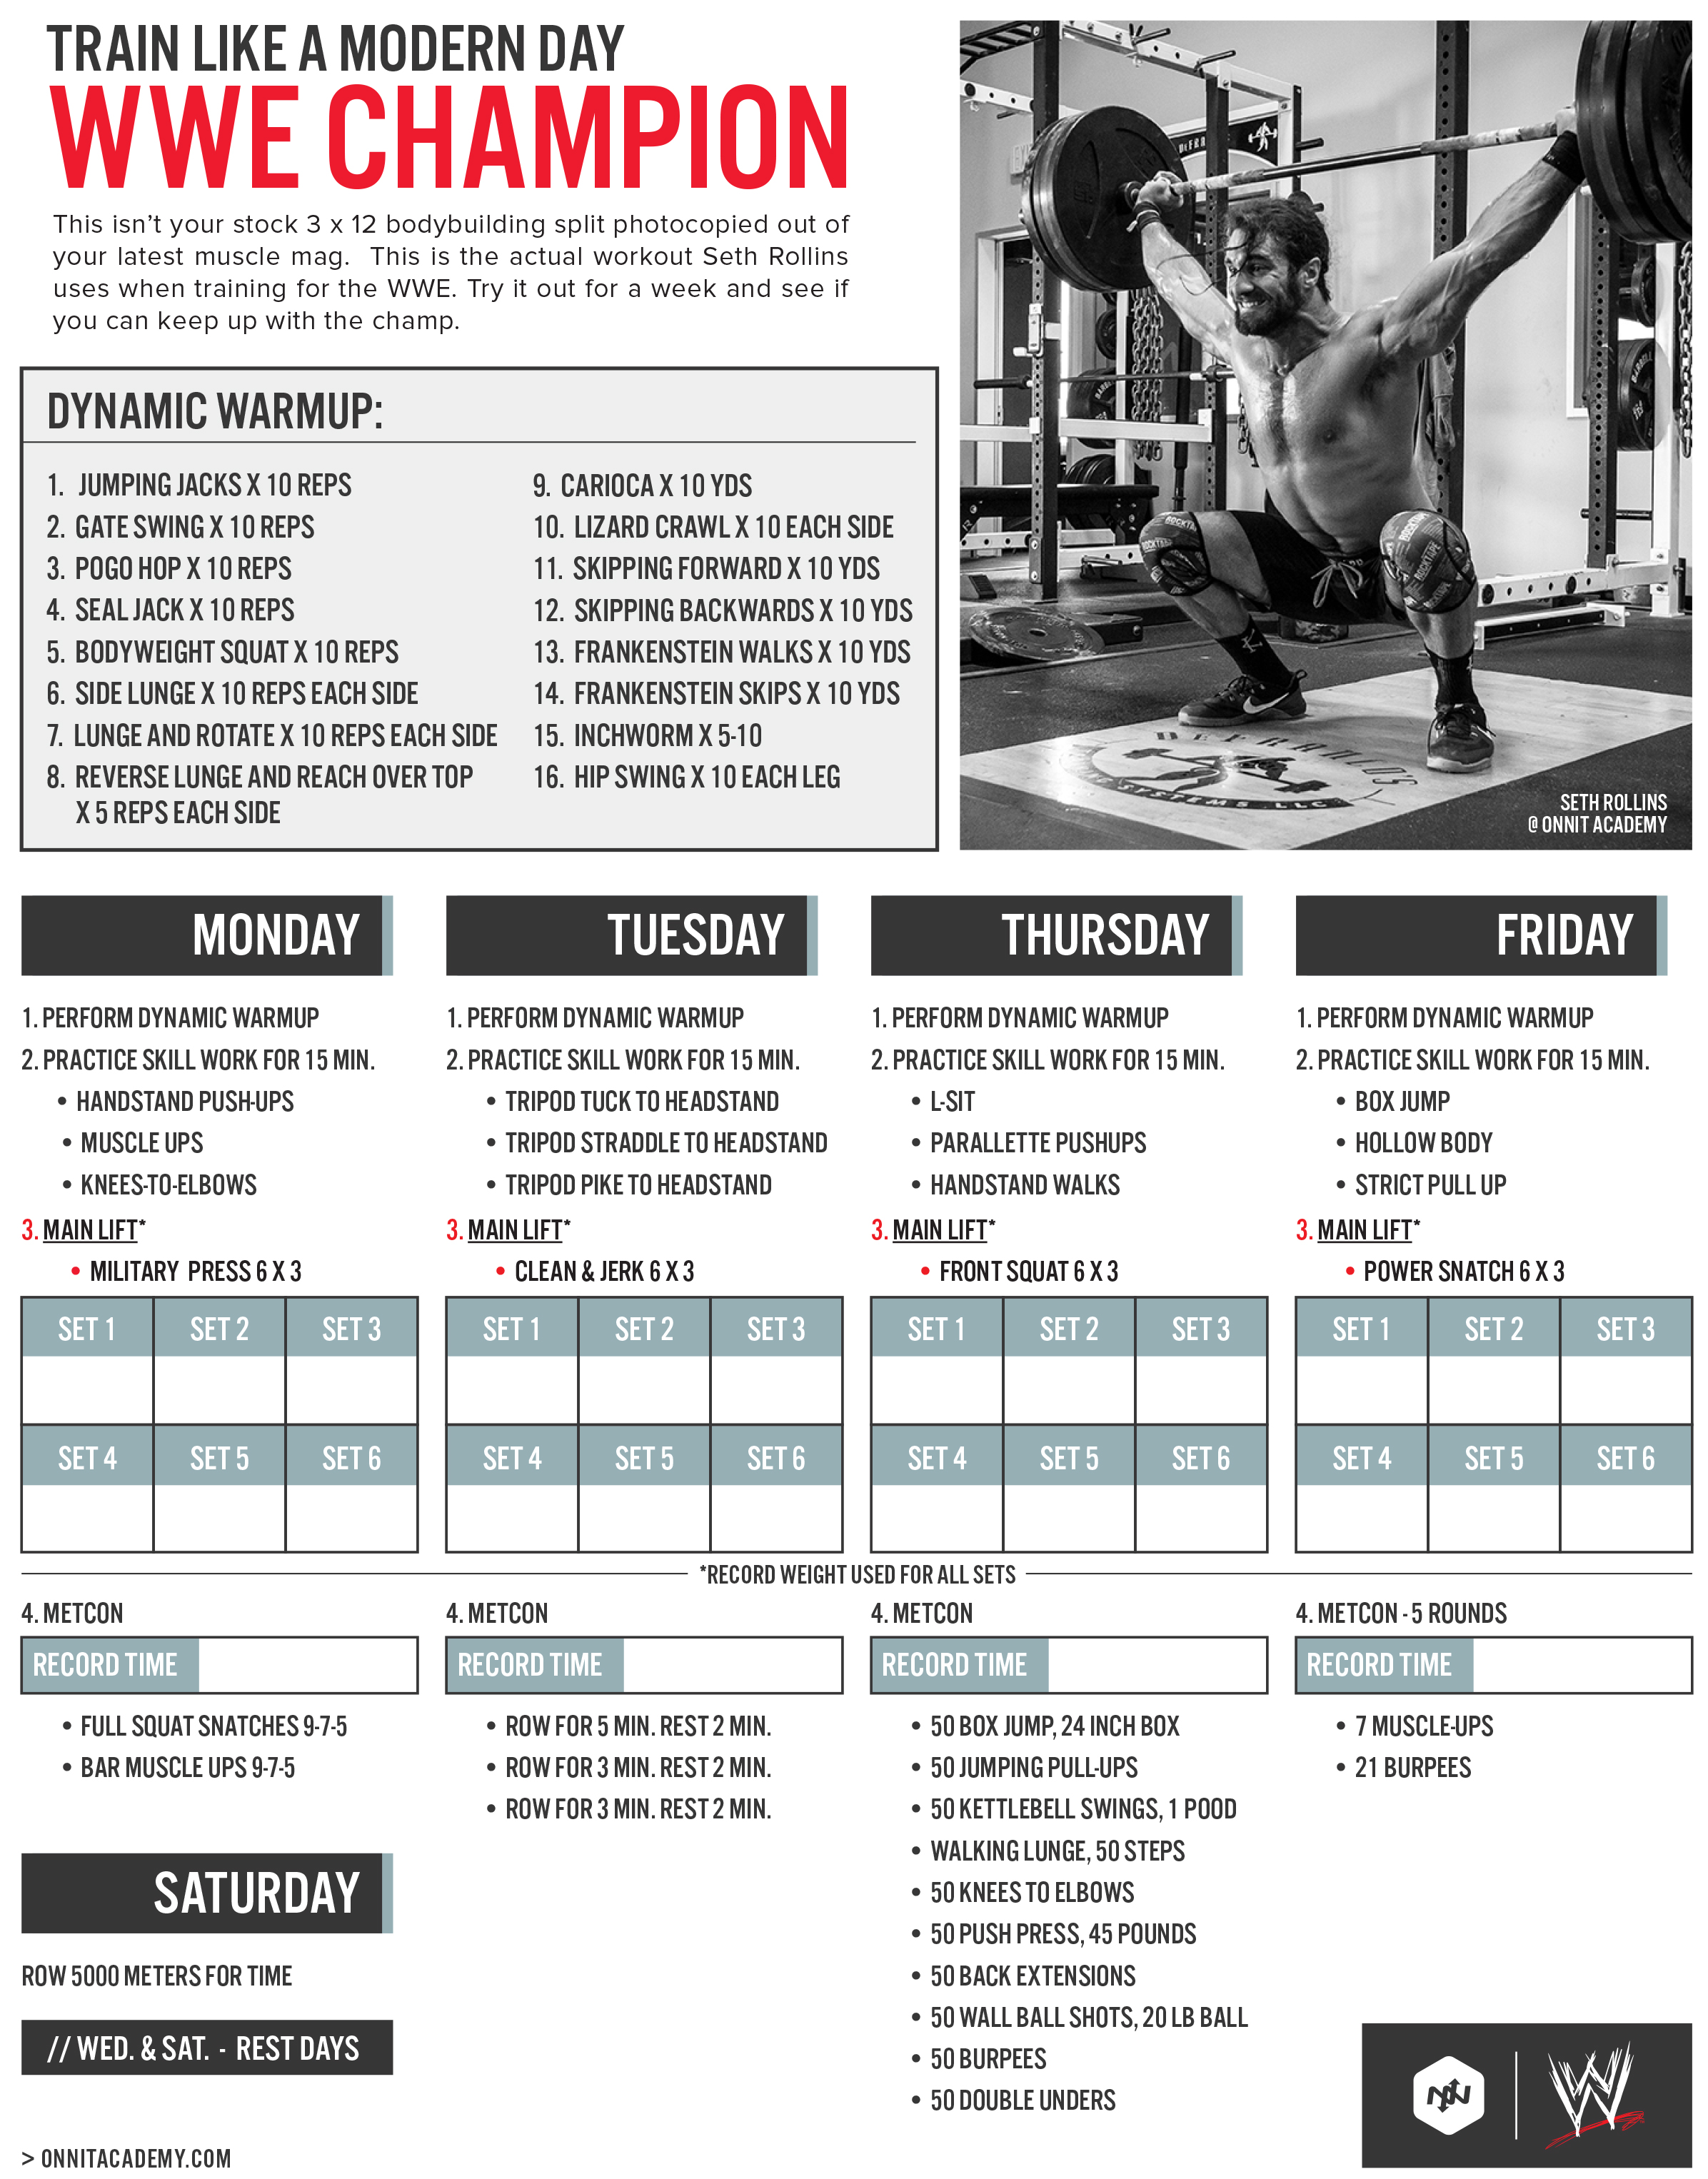 Train Like A Modern WWE Champion: Official Seth Rollins Workout ...